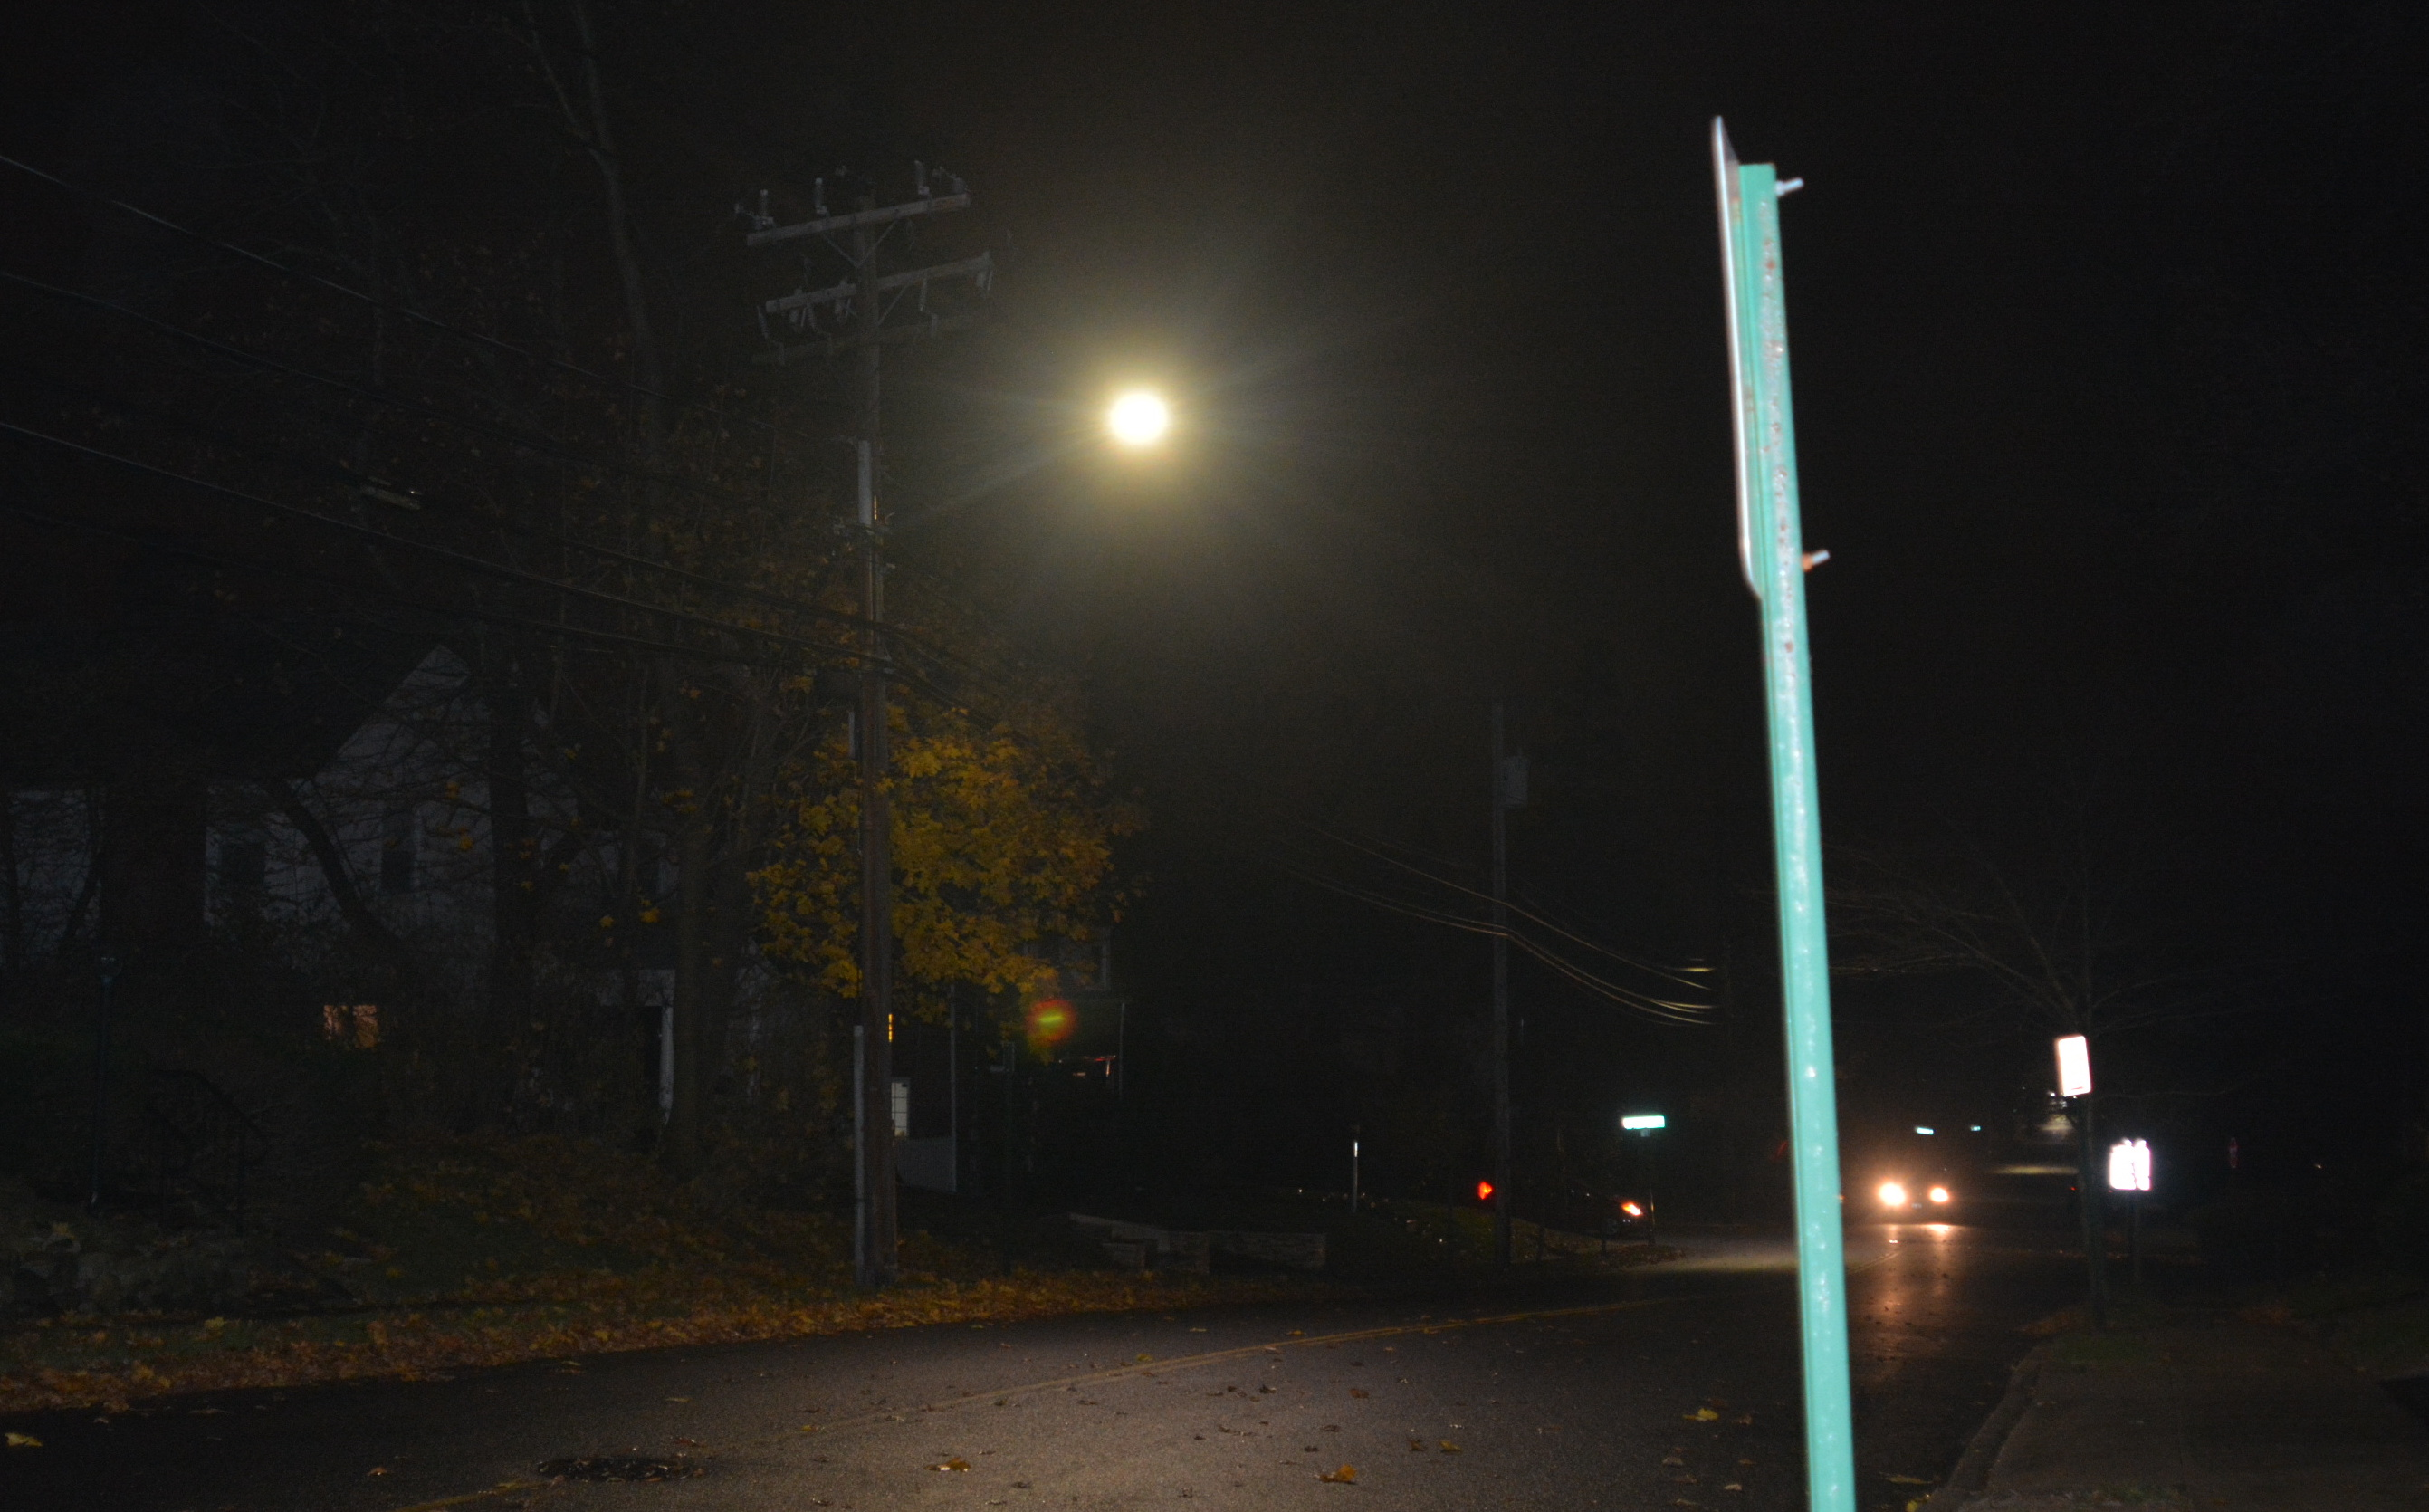 An Led Light Shines Down On Baker Hill Road Photo By Janelle Clausen